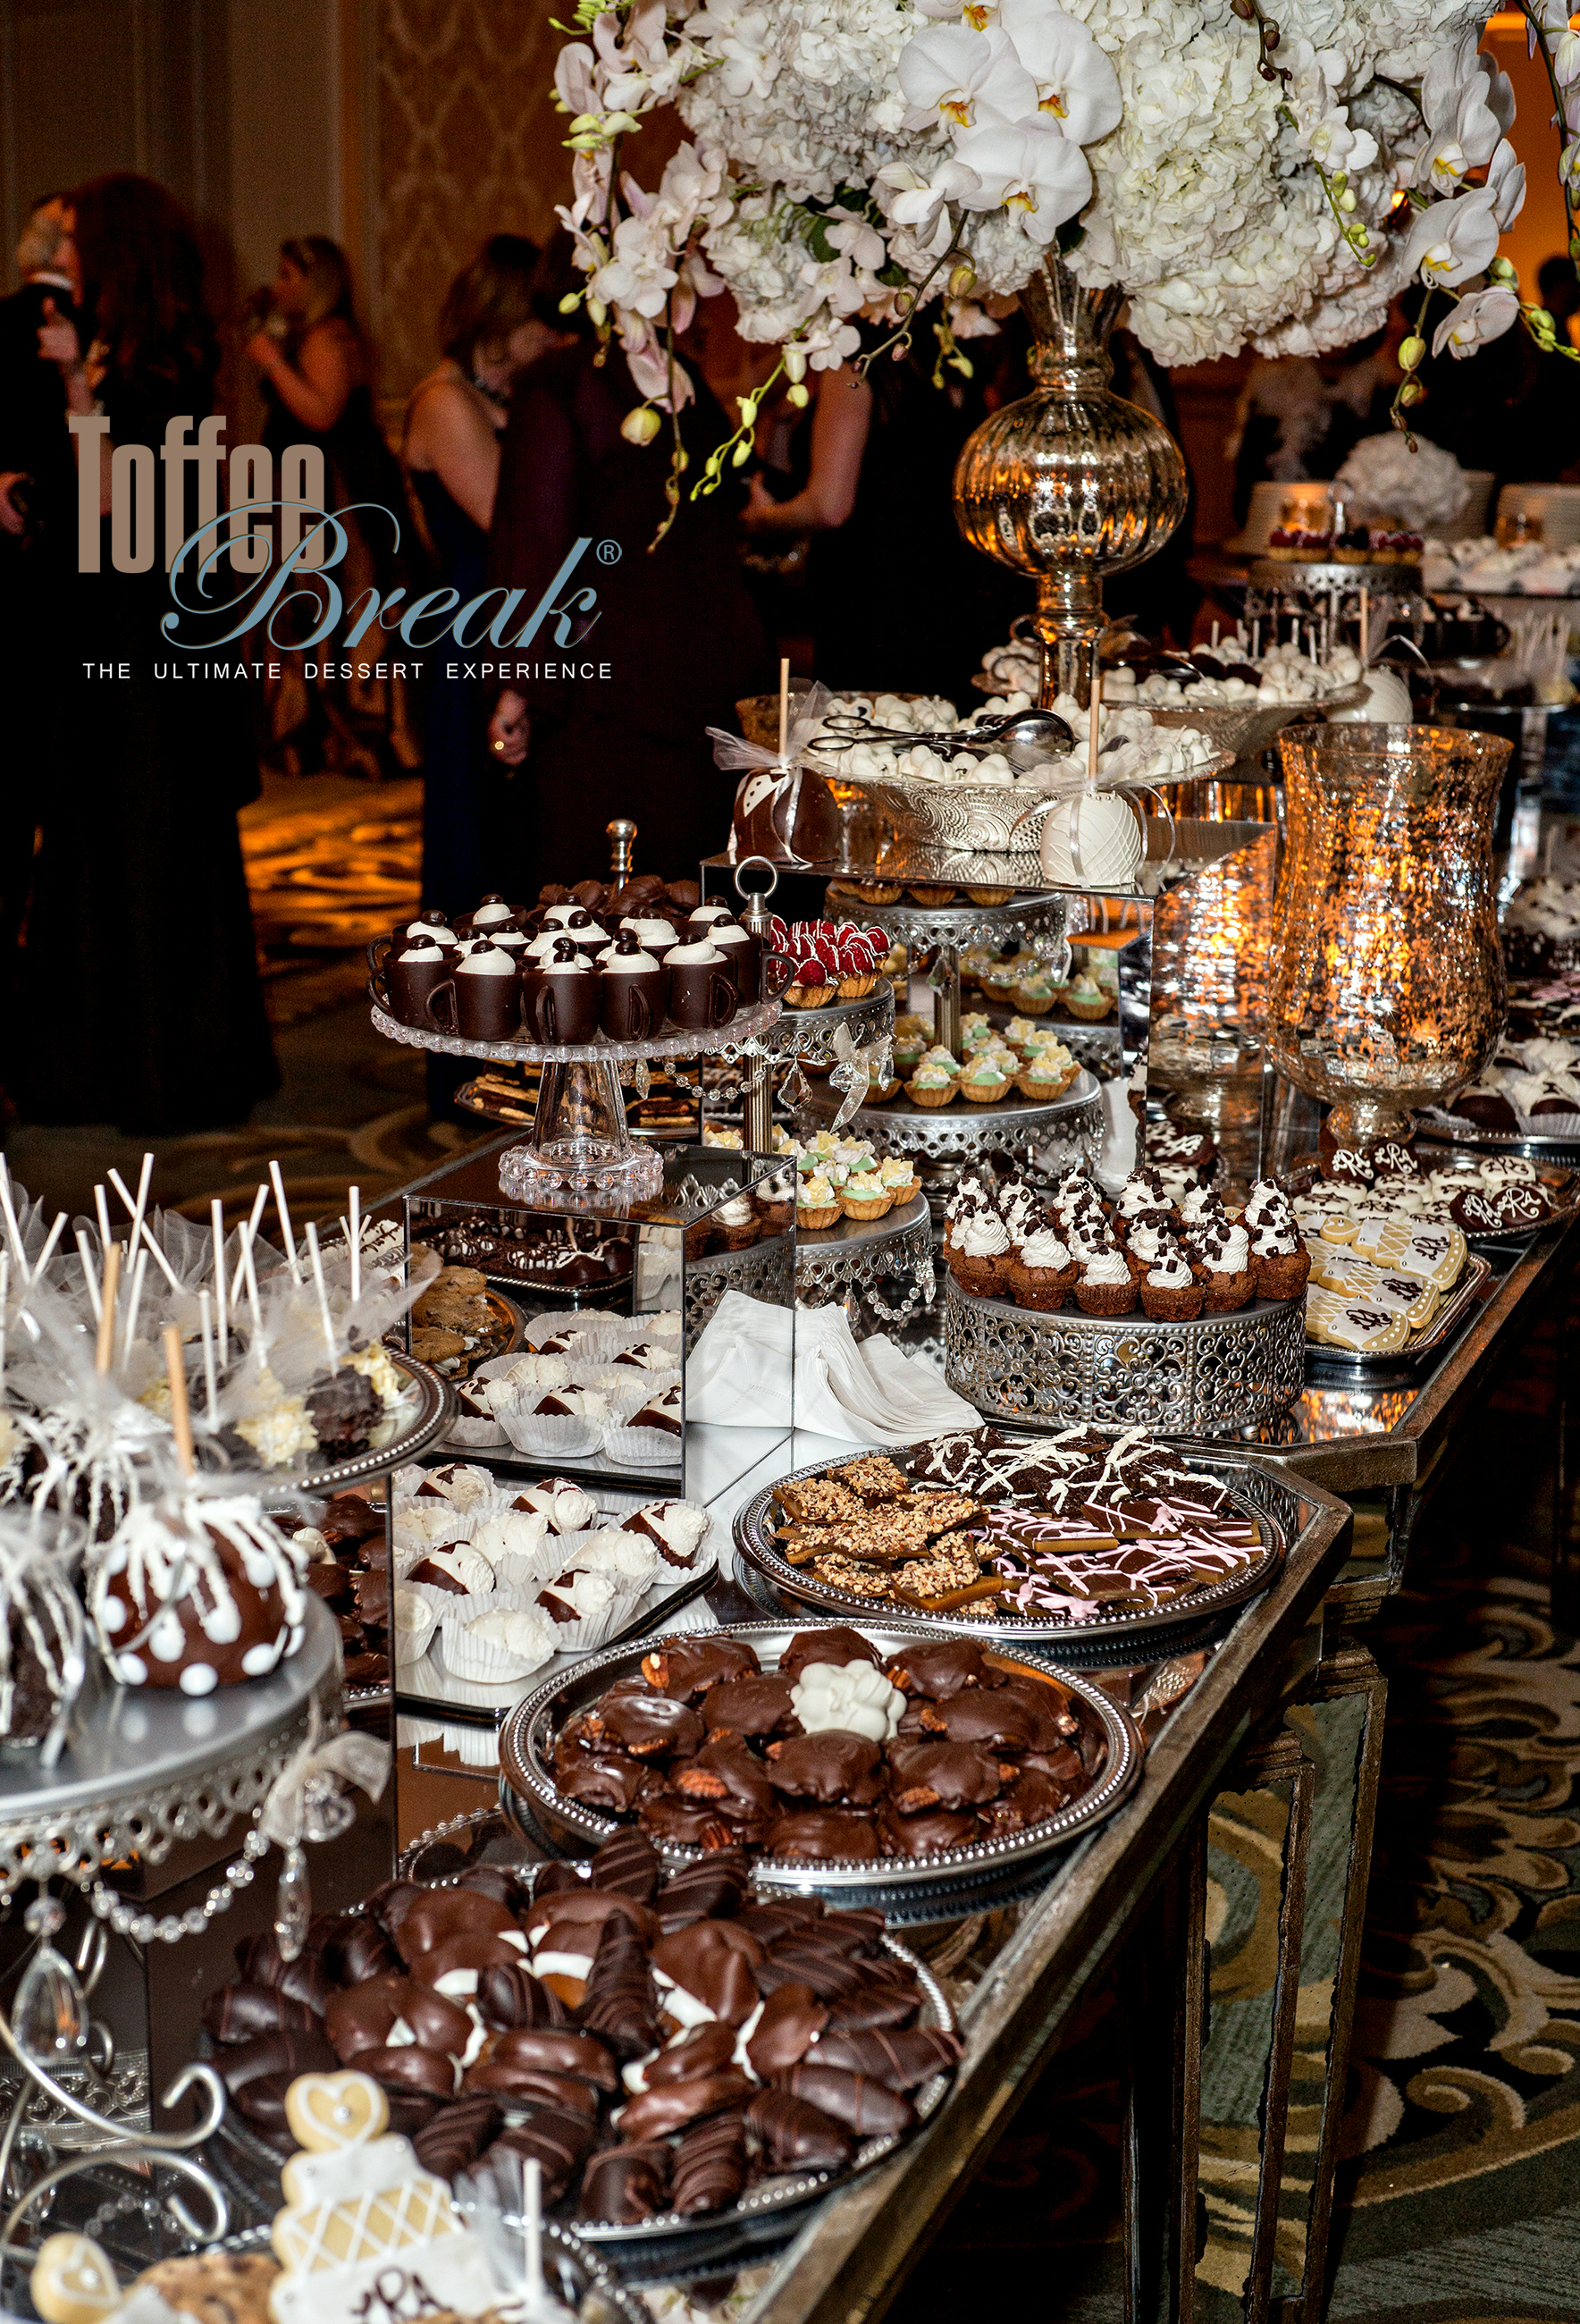 Posted by Toffee Break Desserts - A Caterer professional